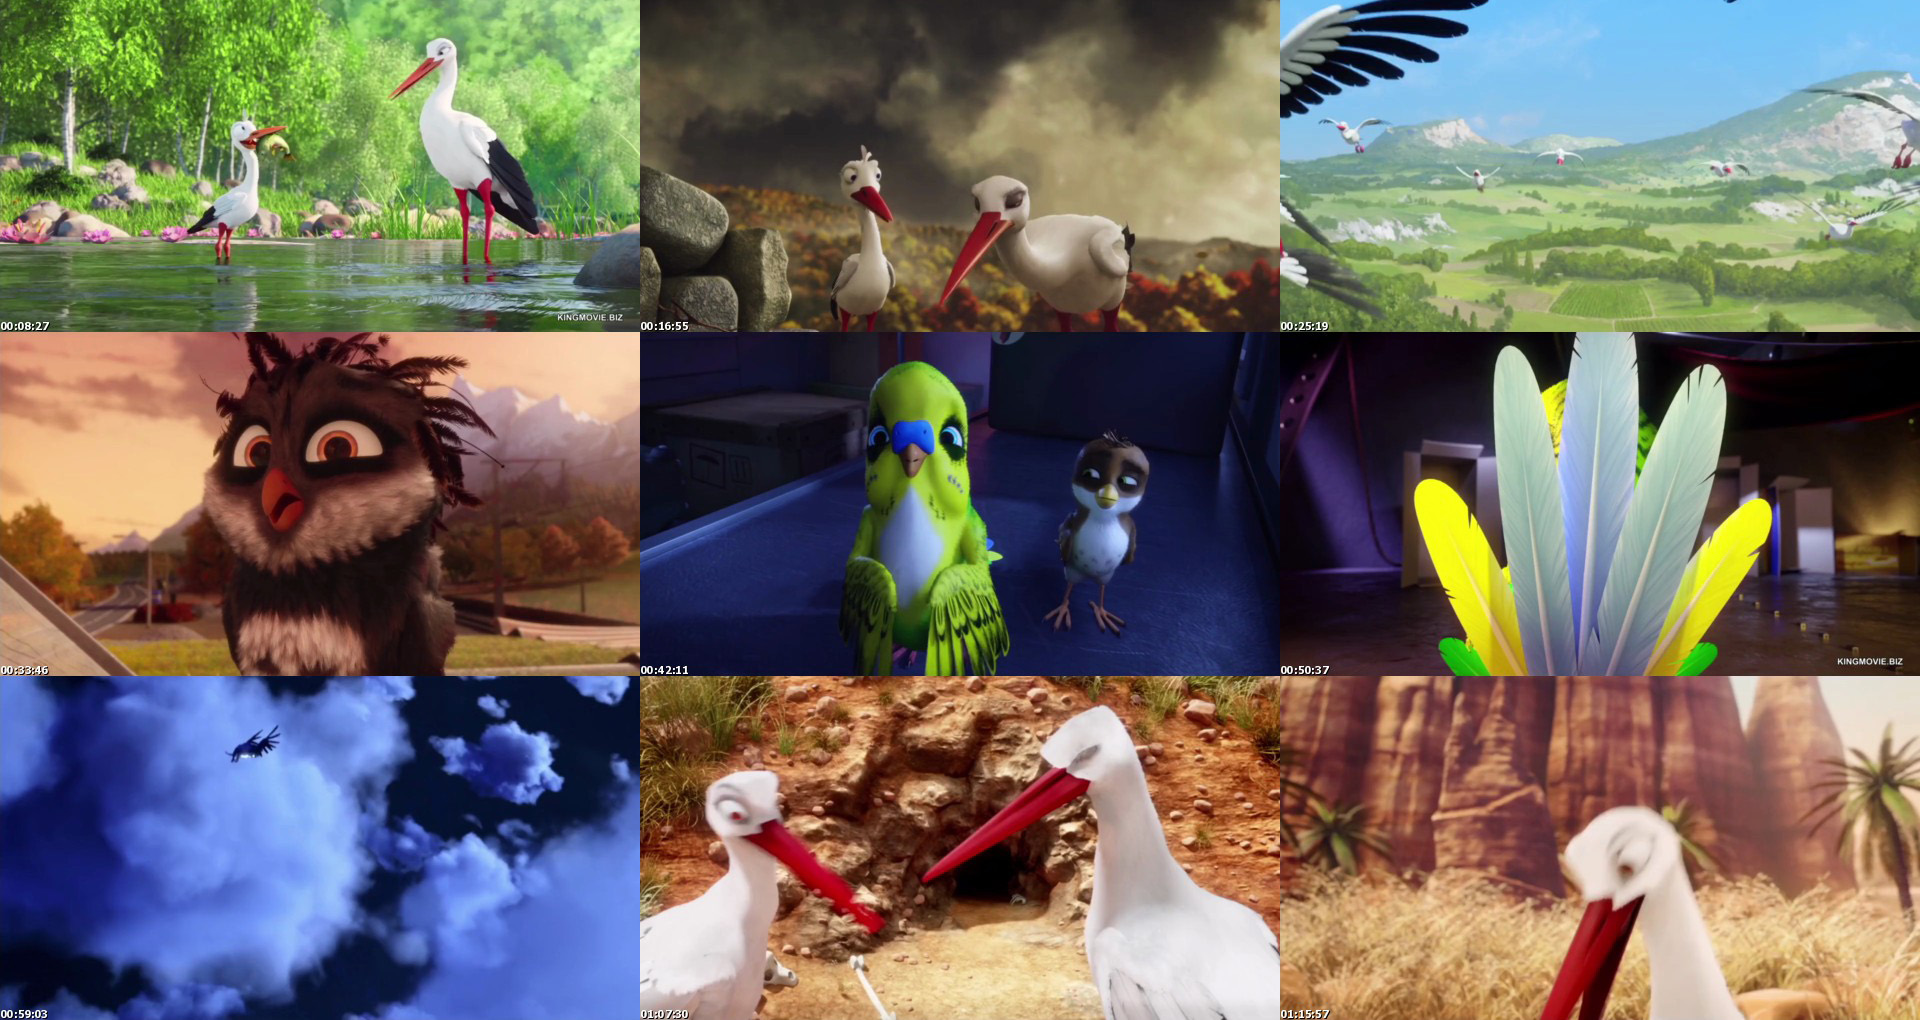 A_Storks_Journey_2017_720p_Farsi_Dubbed_www.download.ir